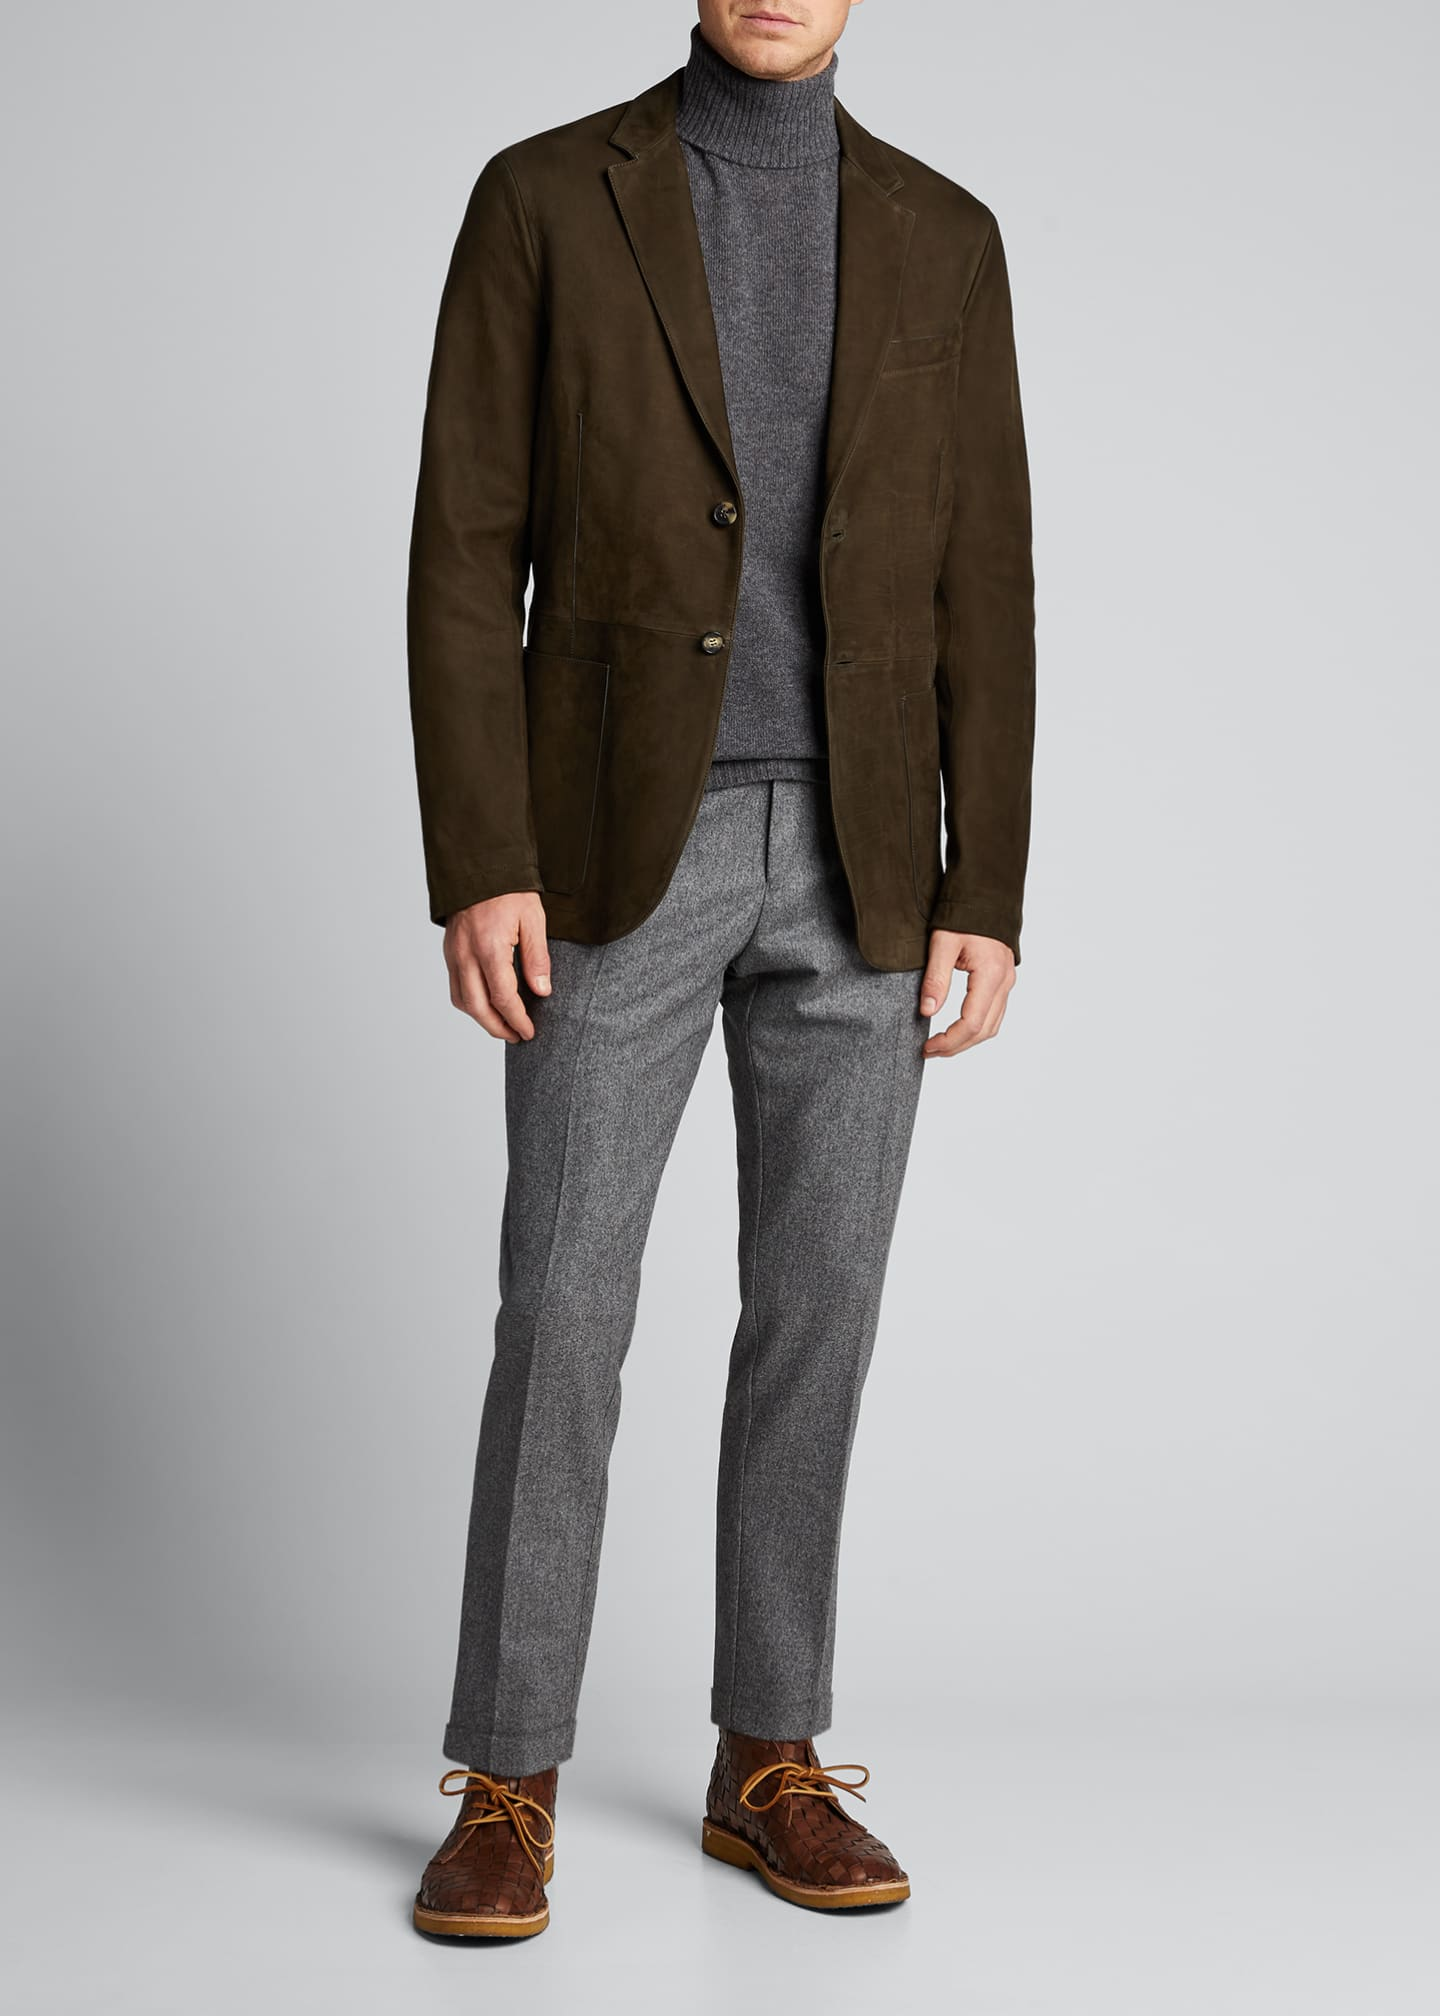 Image 1 of 5: Men's Two-Button Leather Jacket